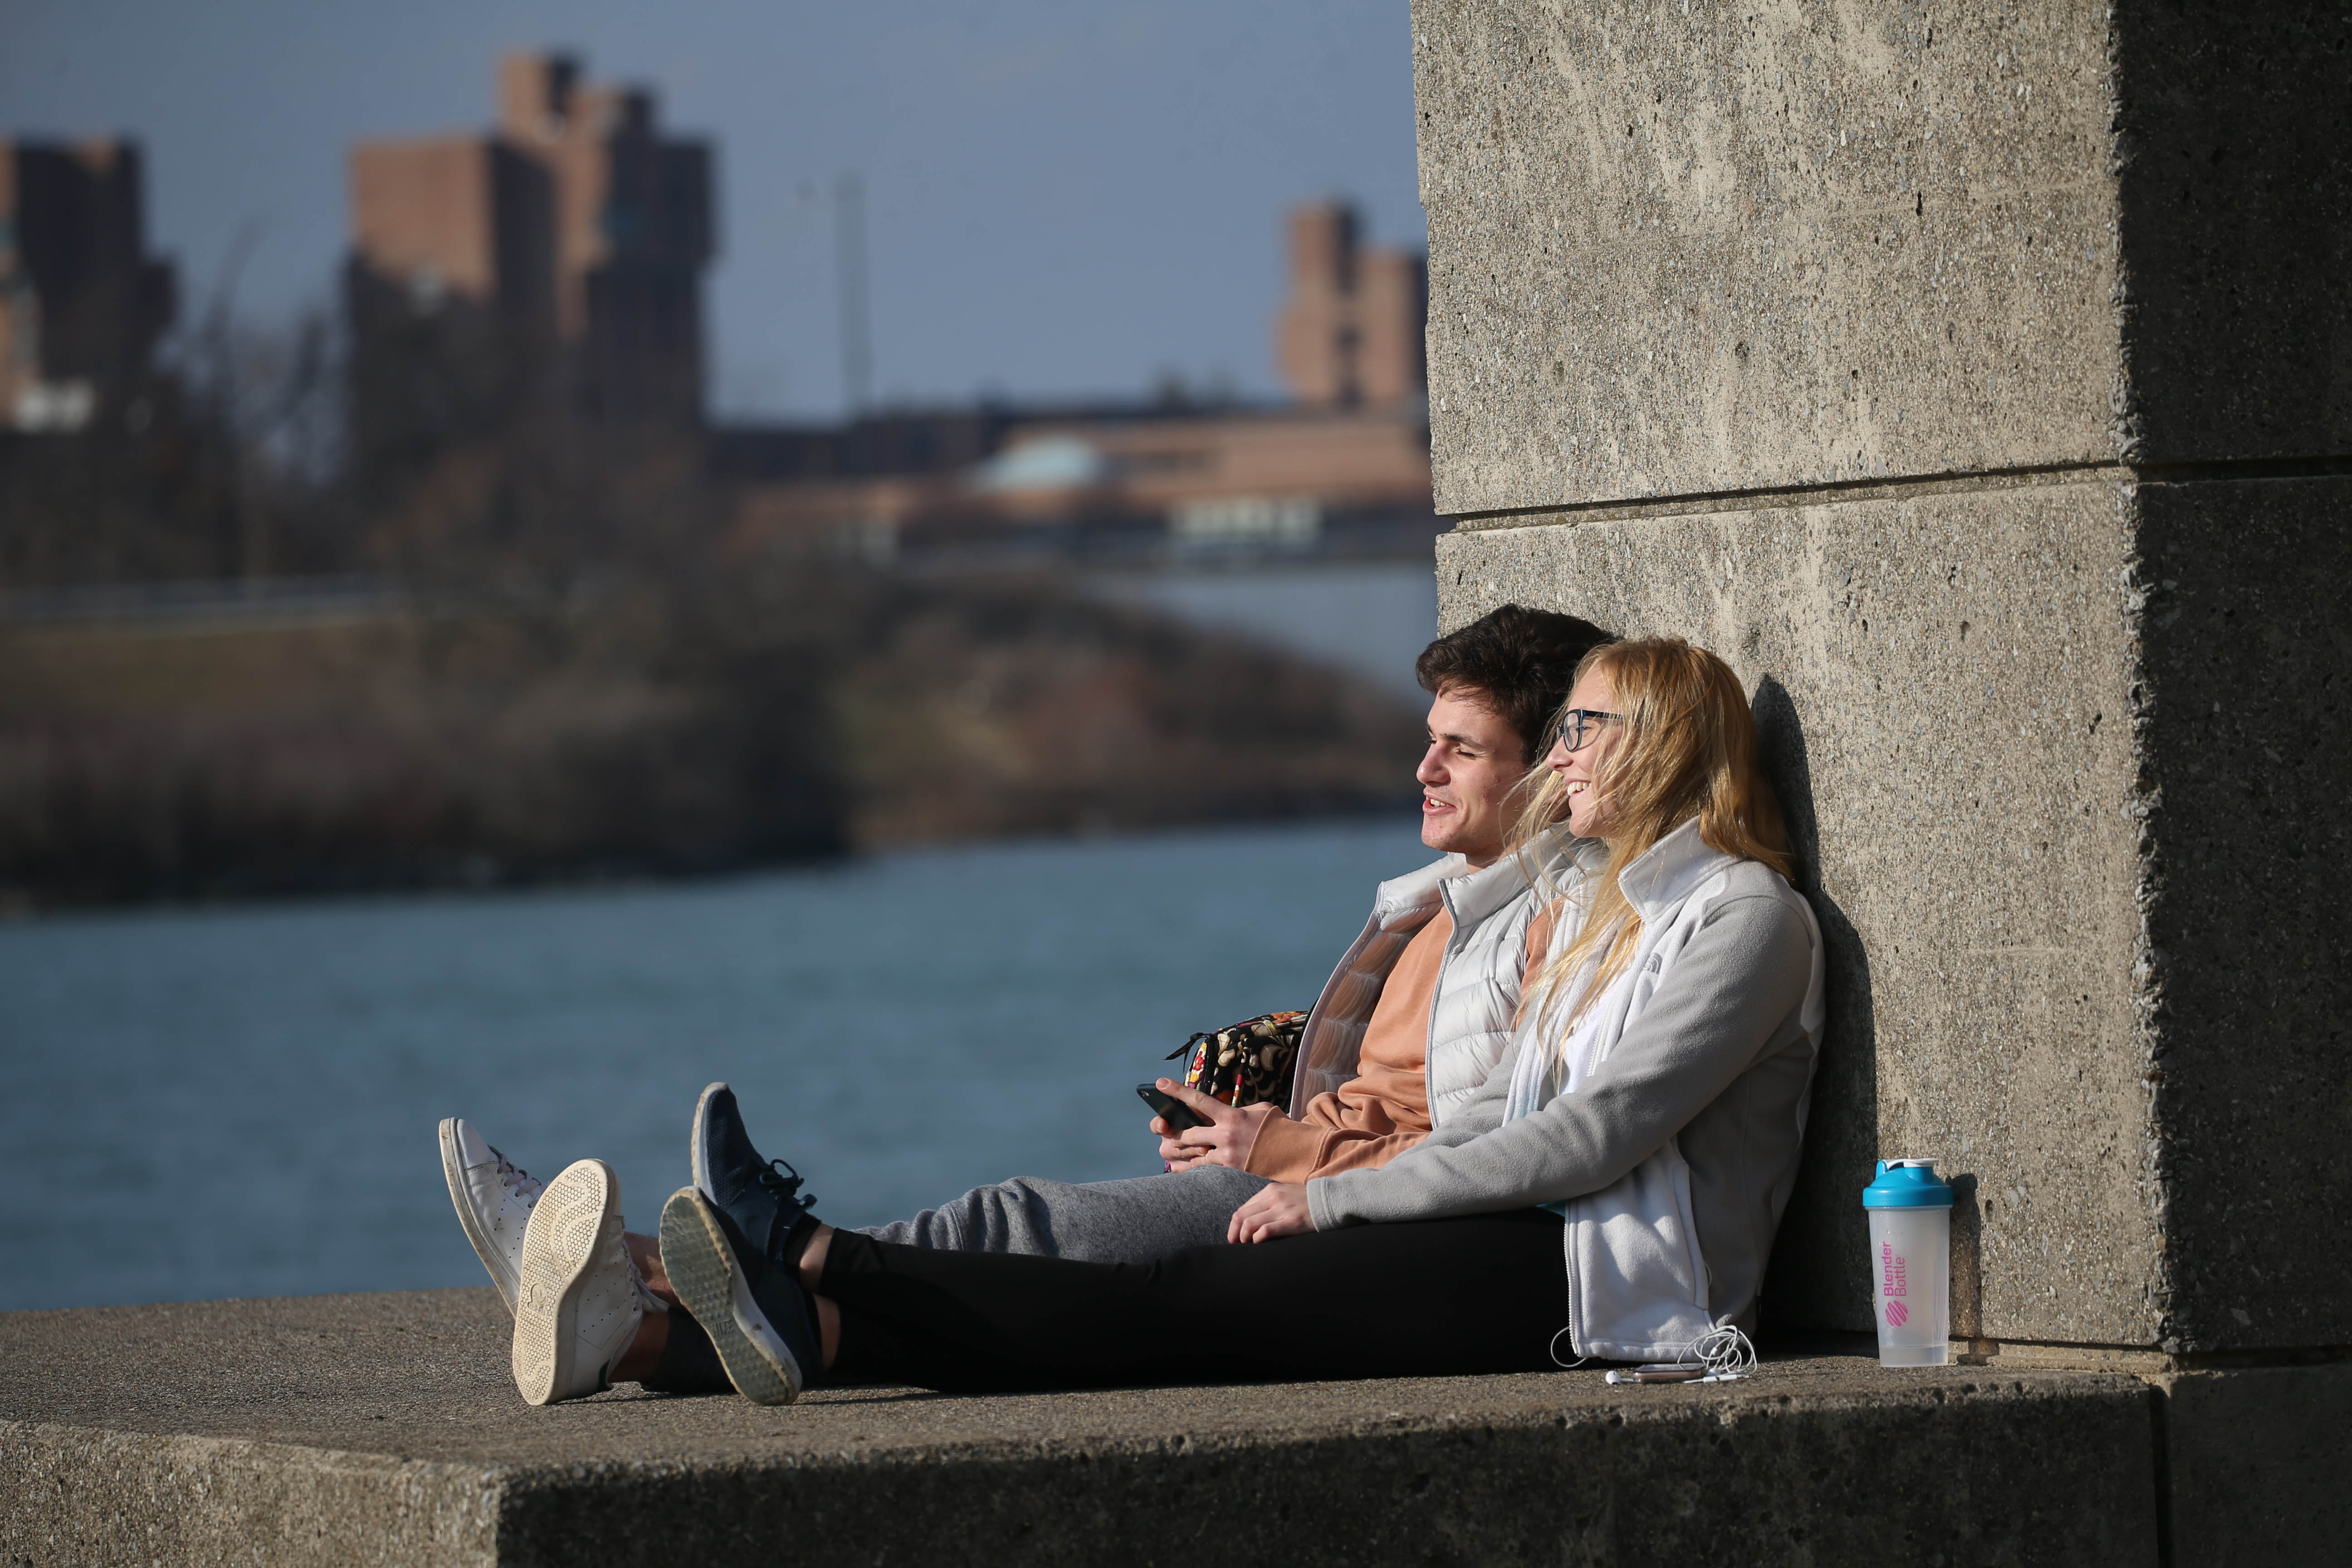 A 71-degree record-breaking day on Thursday got people outside soaking in the sun and warmth, including U.B. students Kemal Atayurt and Nicole Hill at Baird Point on the North Campus. It was only one of three February days in Buffalo's history when the temperature reached at least 70 degrees and tied the warmest February day ever. (Sharon Cantillon/Buffalo News)